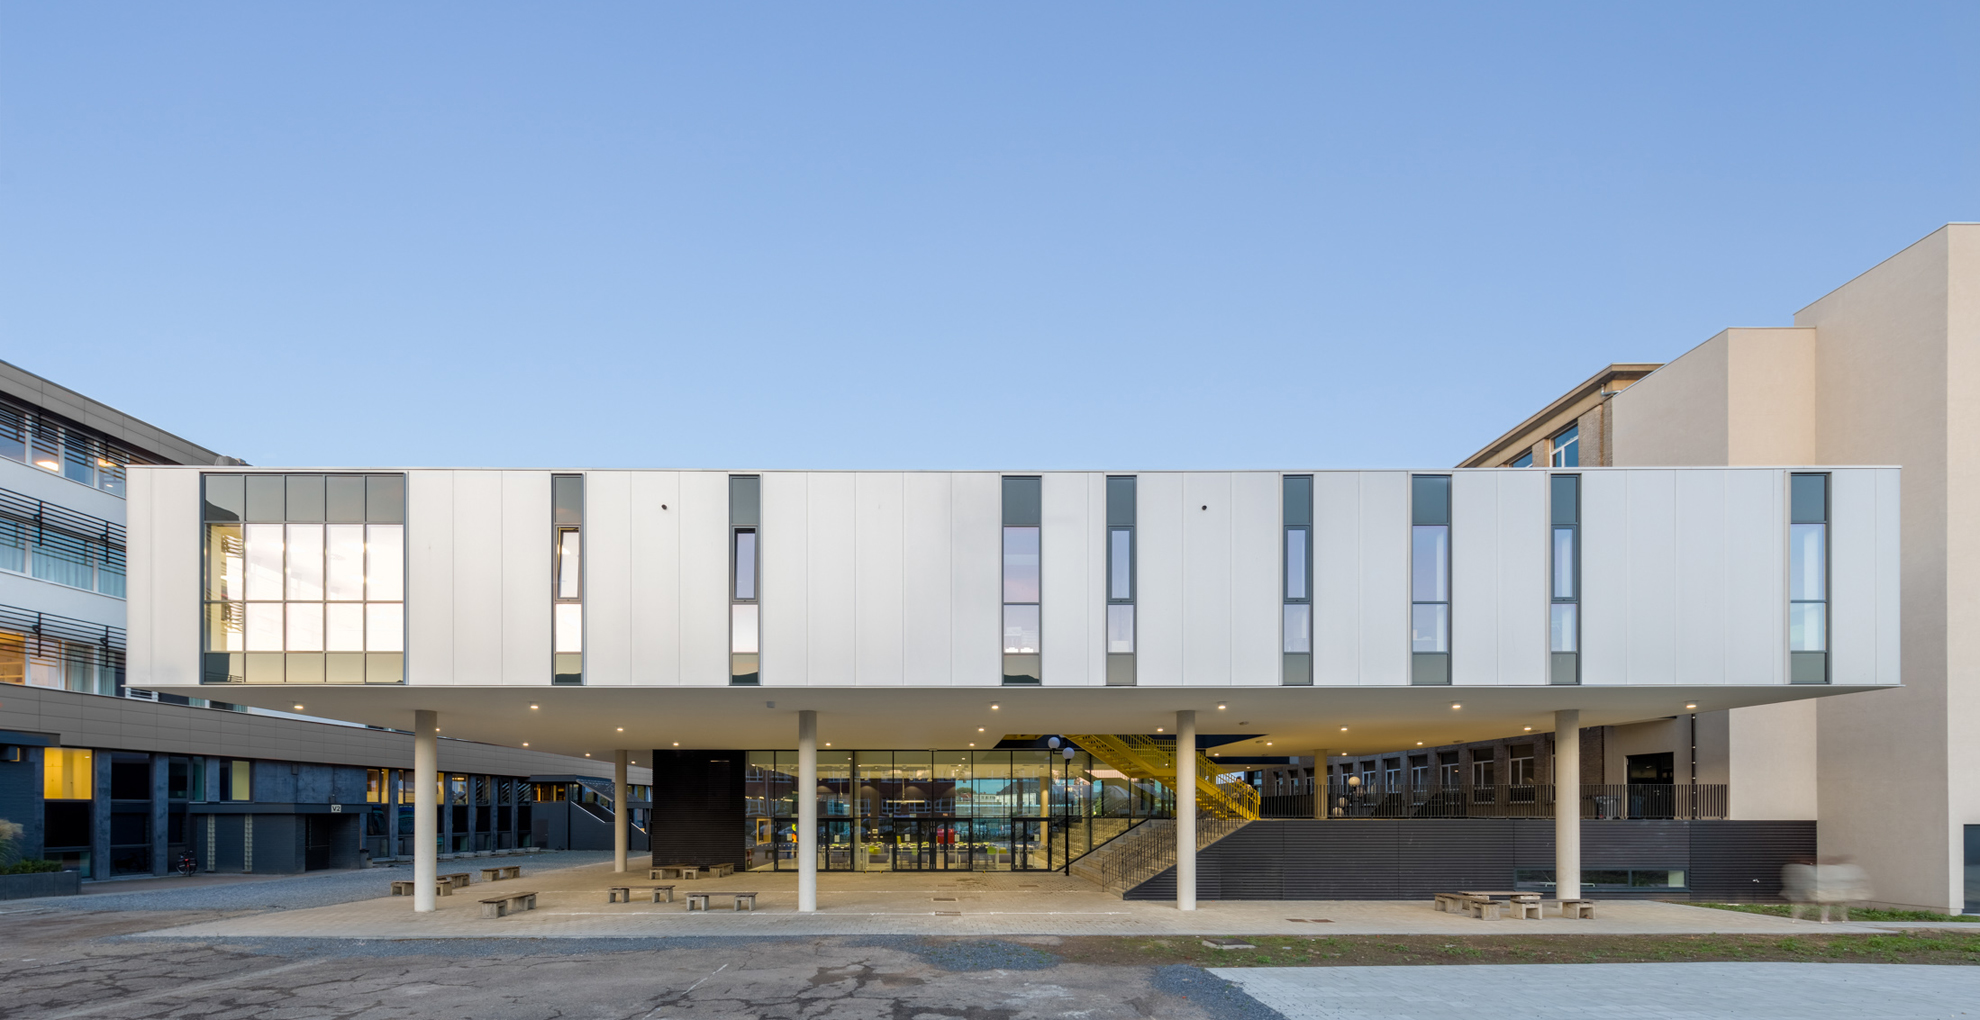 Science building- St-Jozef Instituut, Geel